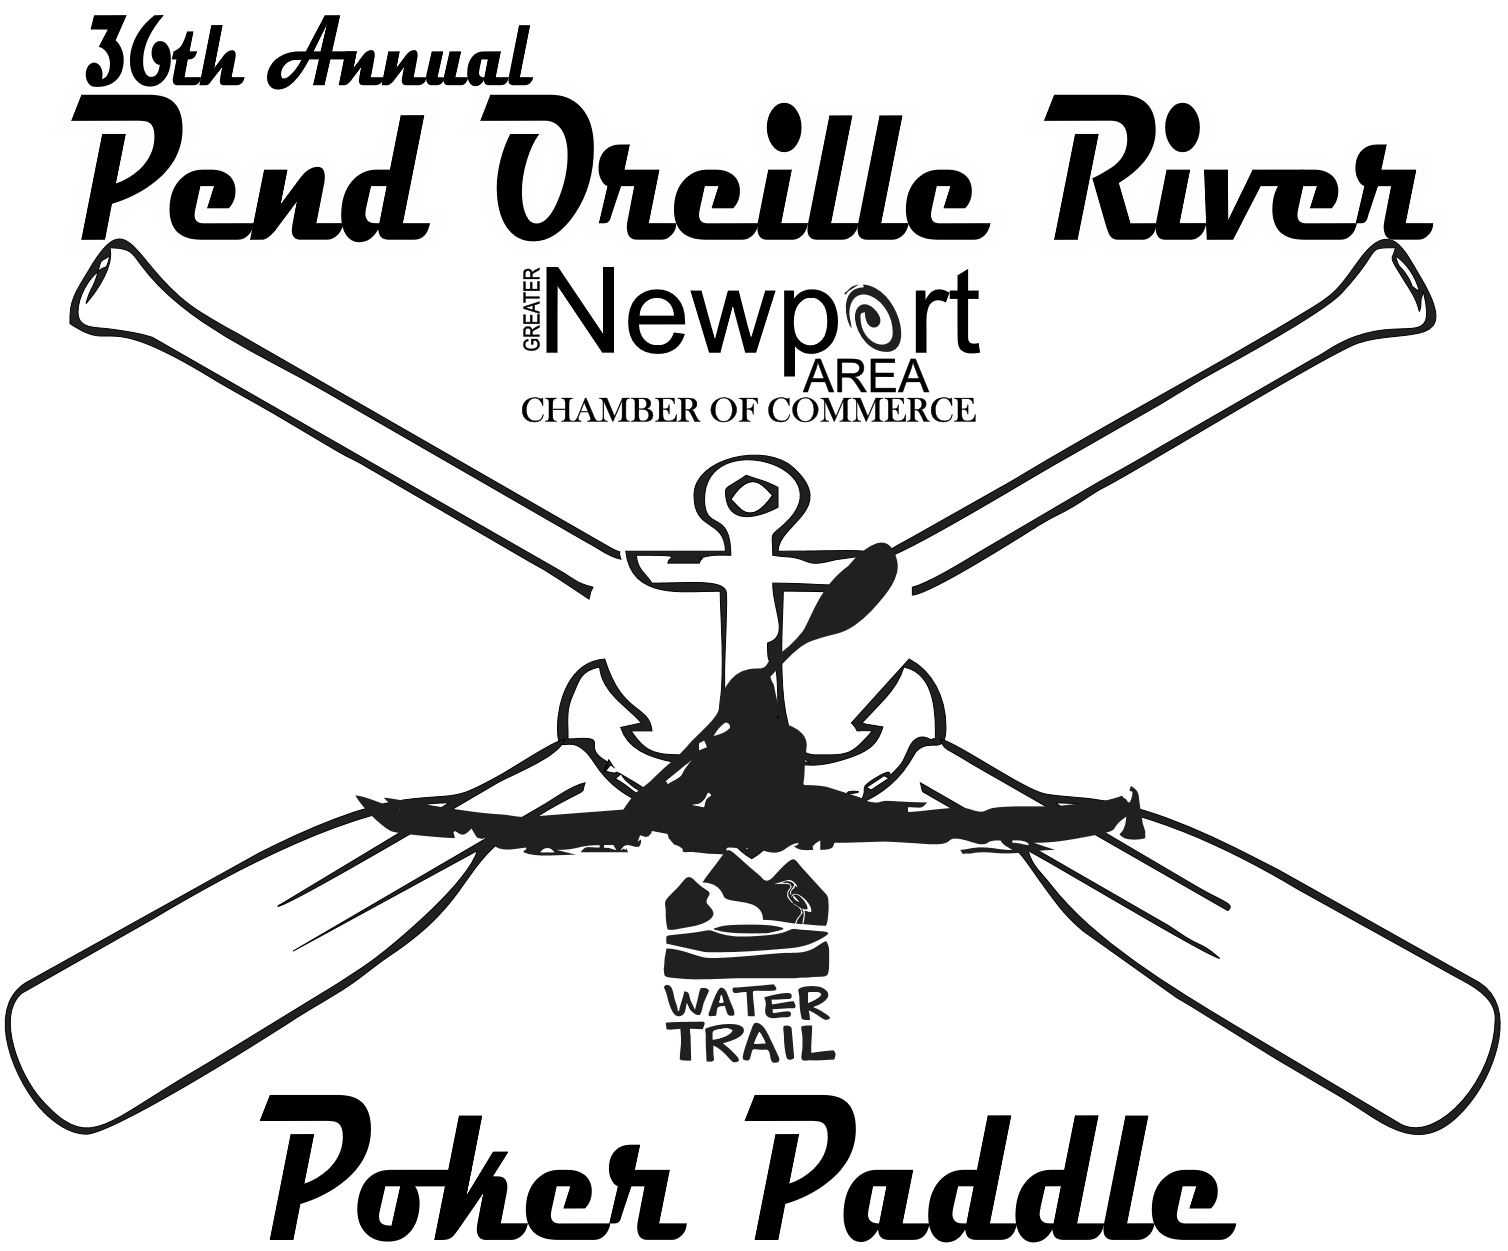 REGISTER FOR THE 36TH ANNUAL POKER PADDLE